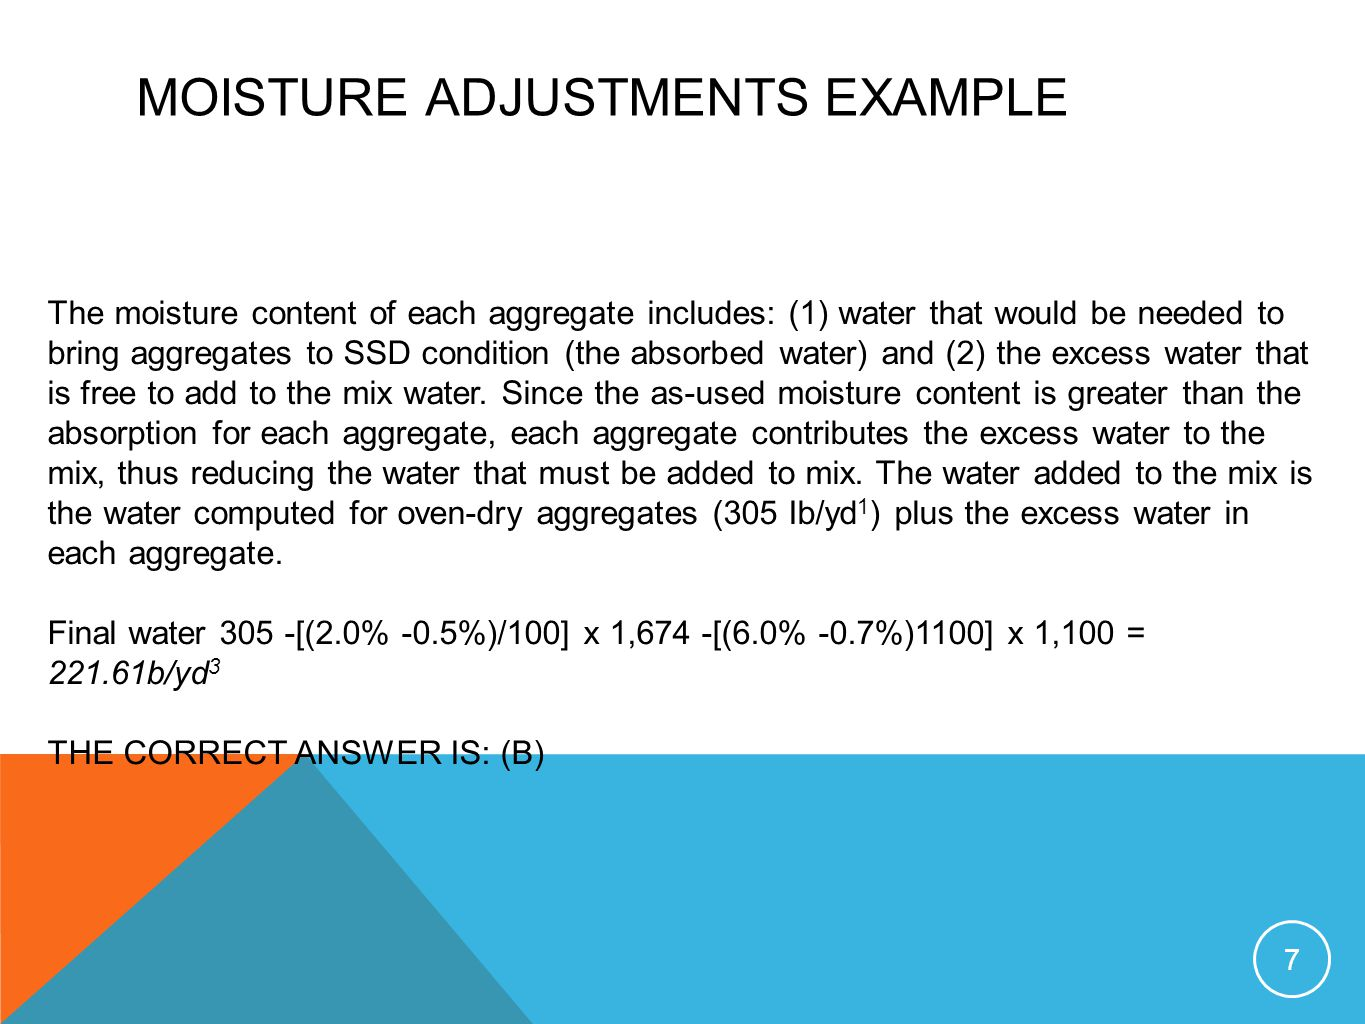 MOISTURE ADJUSTMENTS EXAMPLE The moisture content of each aggregate includes: (1) water that would be needed to bring aggregates to SSD condition (the